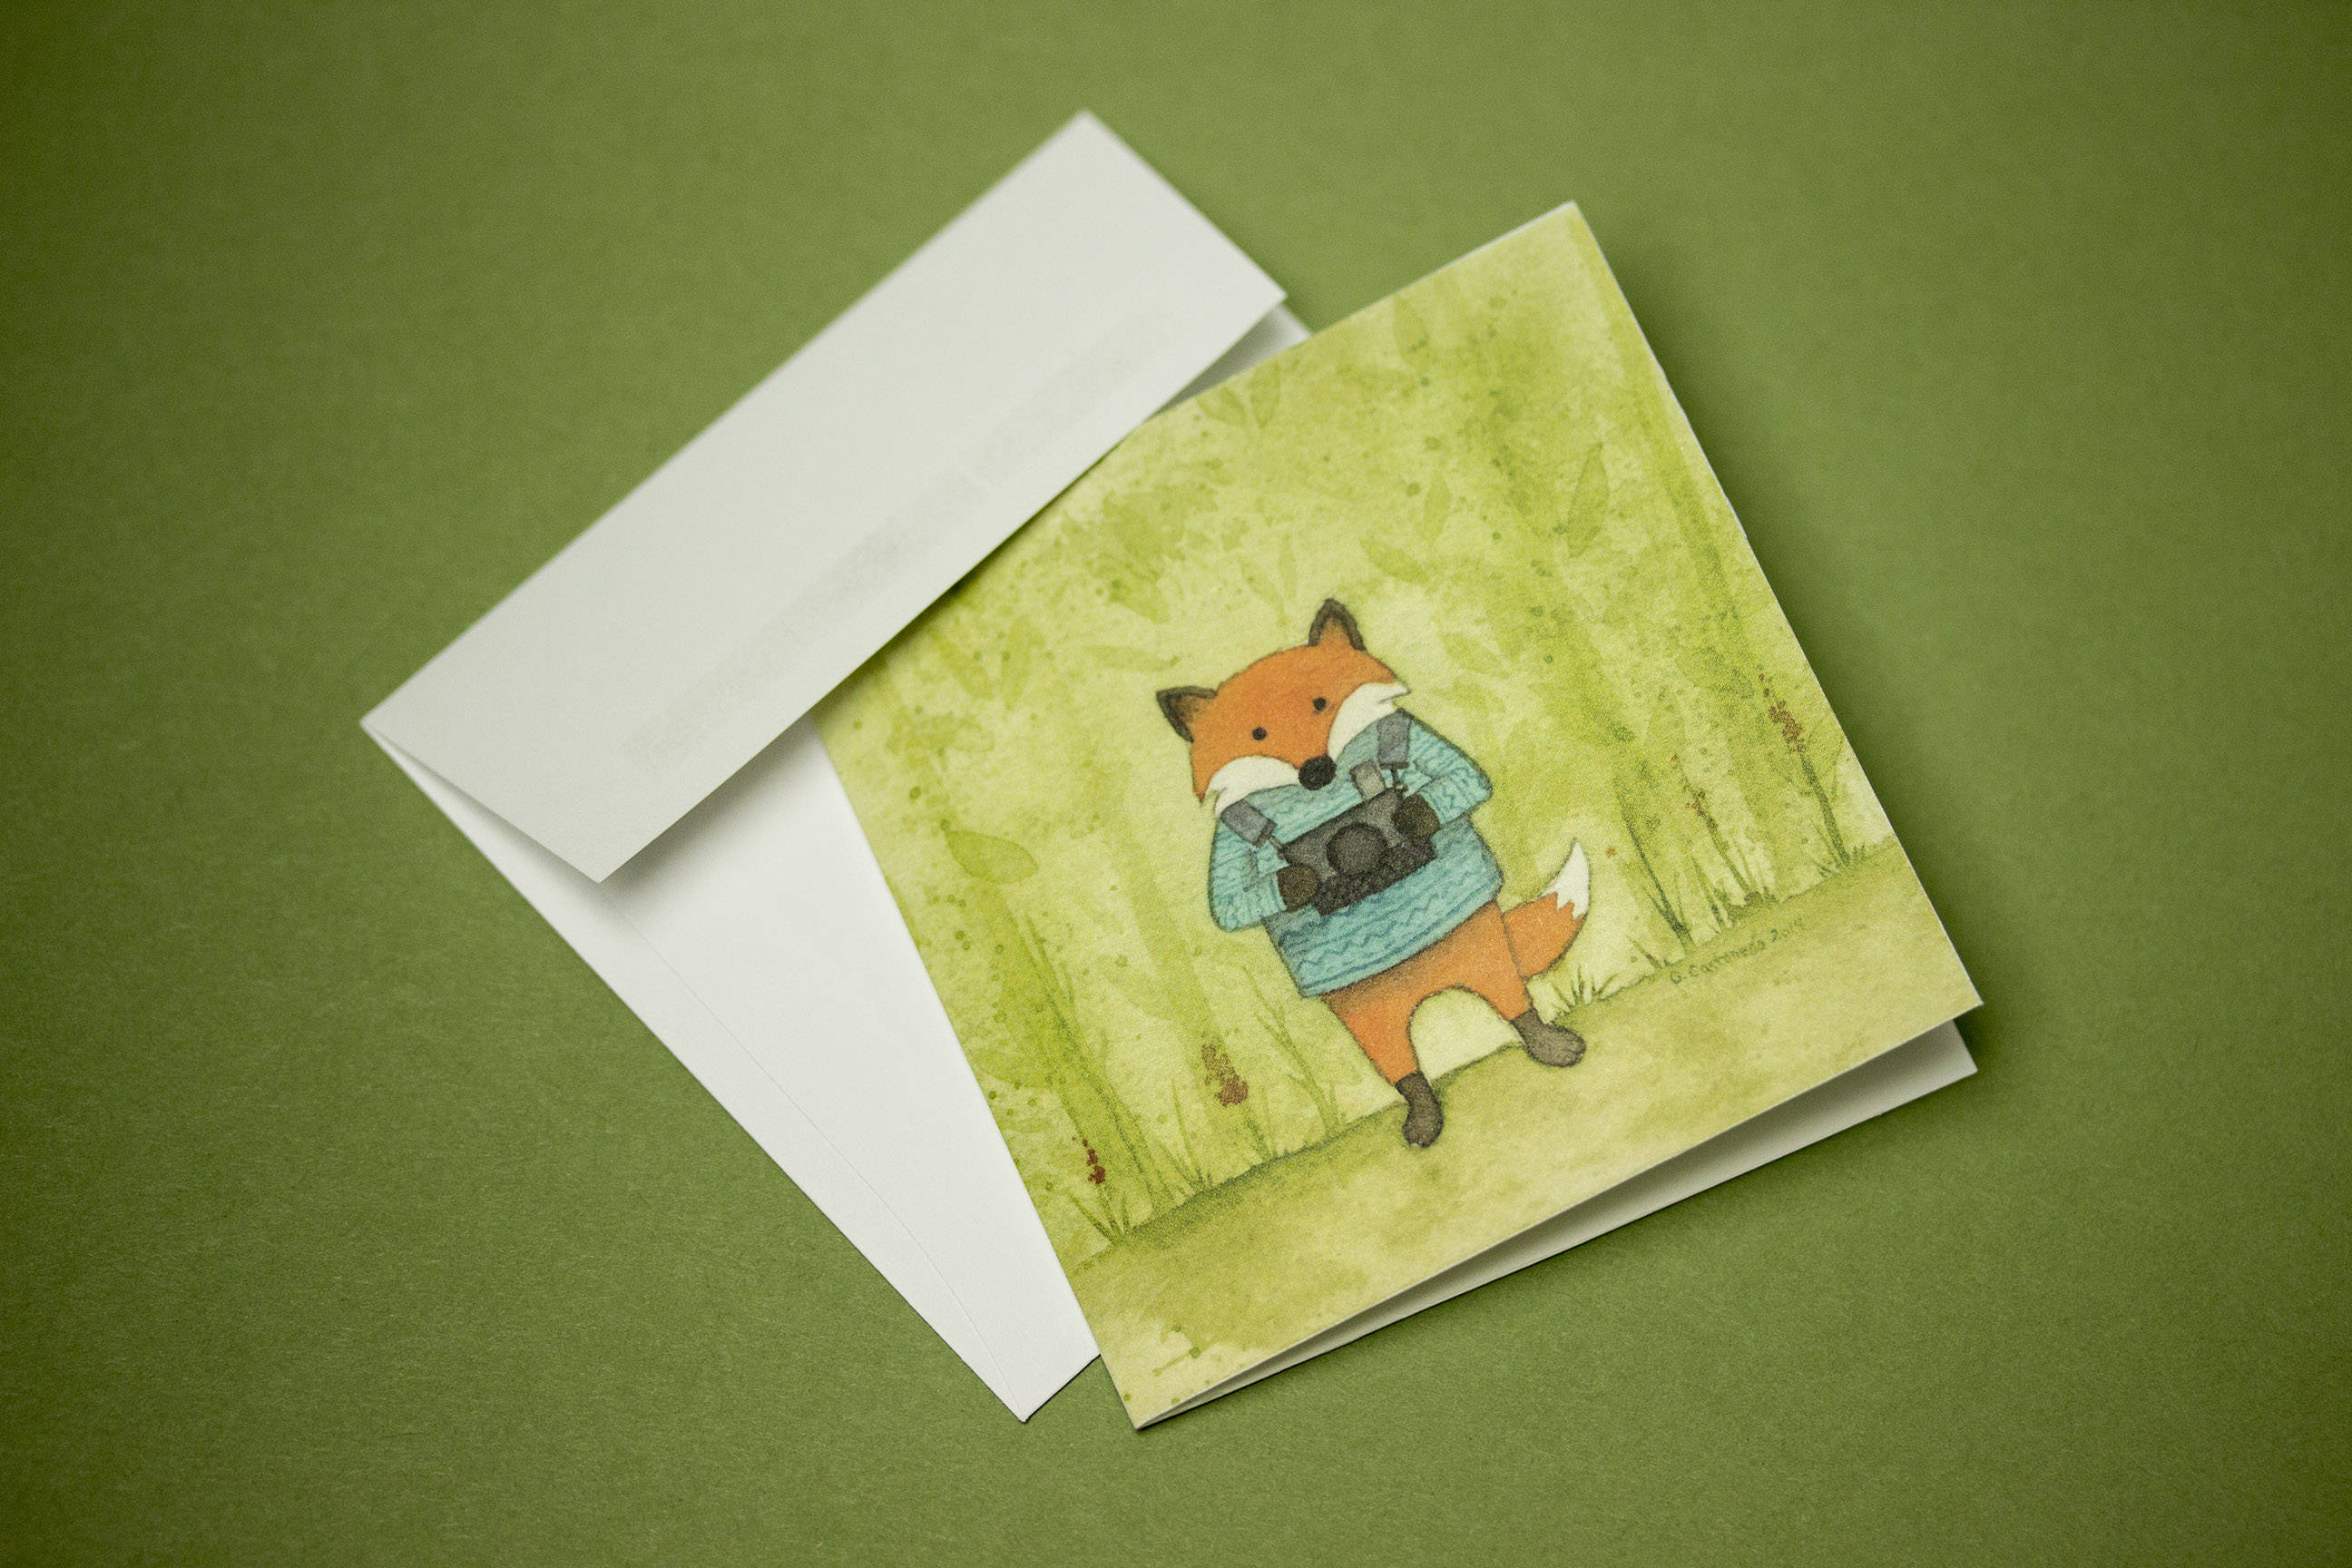 Fox greeting card mini greeting card thank you cards lou moss fox greeting card mini greeting card thank you cards kristyandbryce Gallery